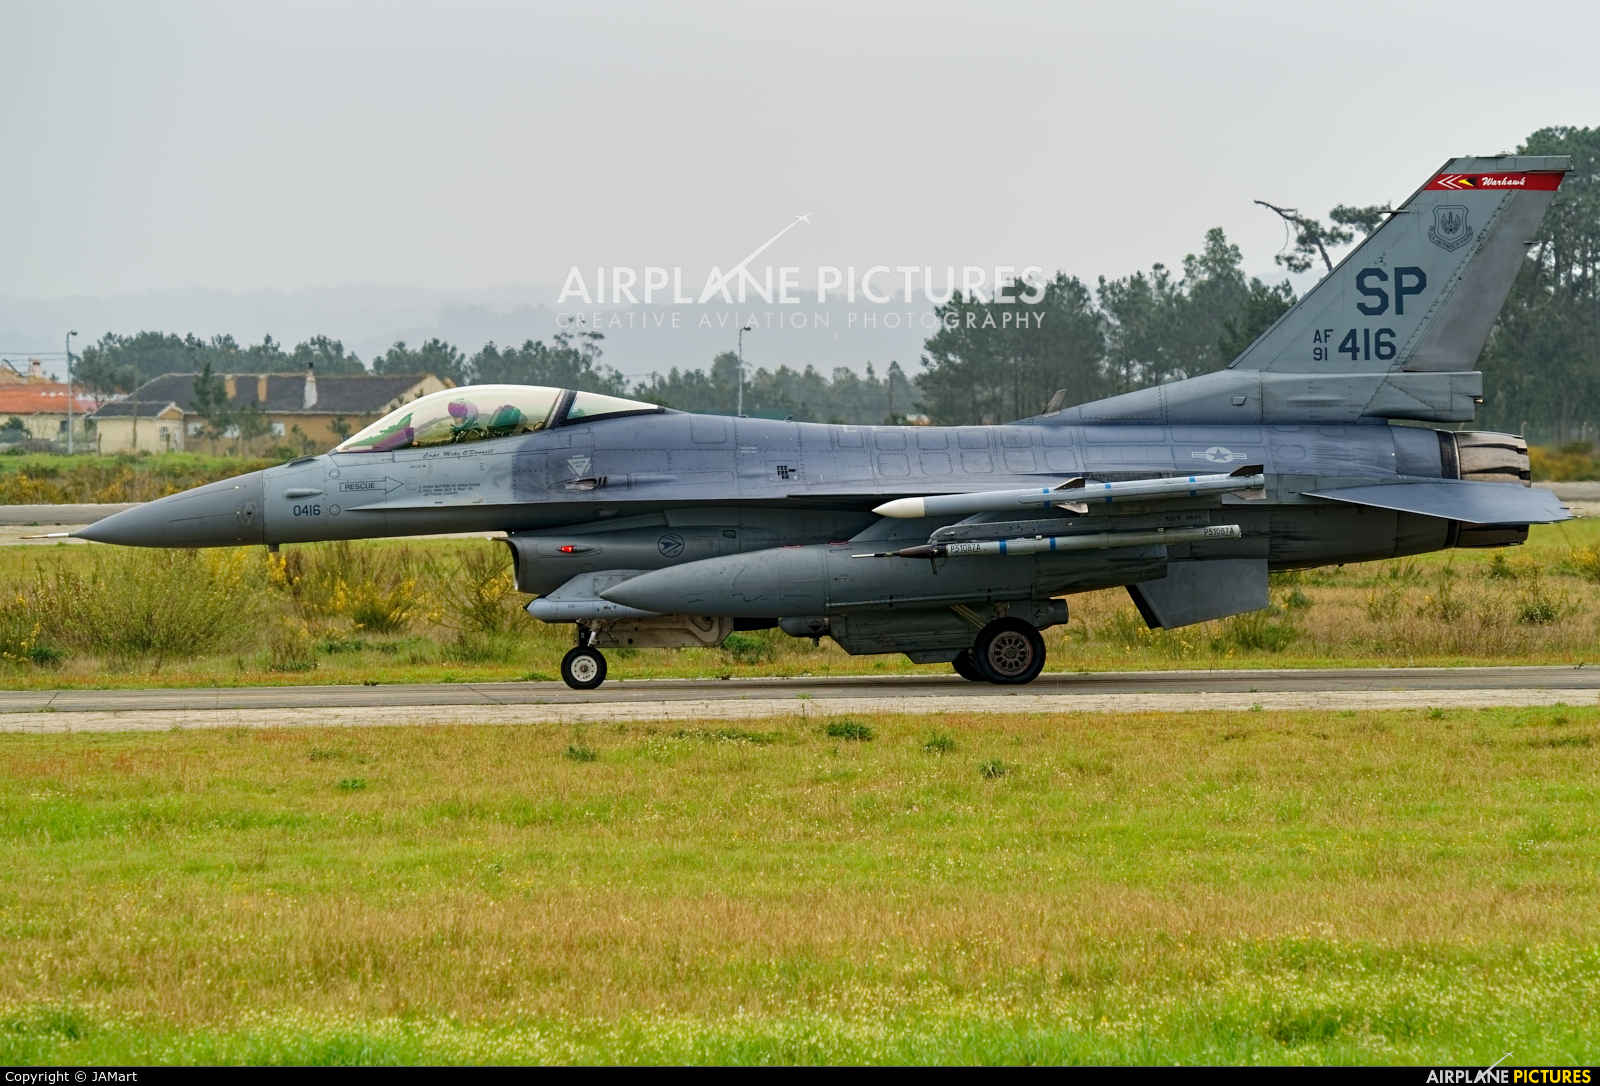 USA - Air Force 91-0416 aircraft at Monte Real